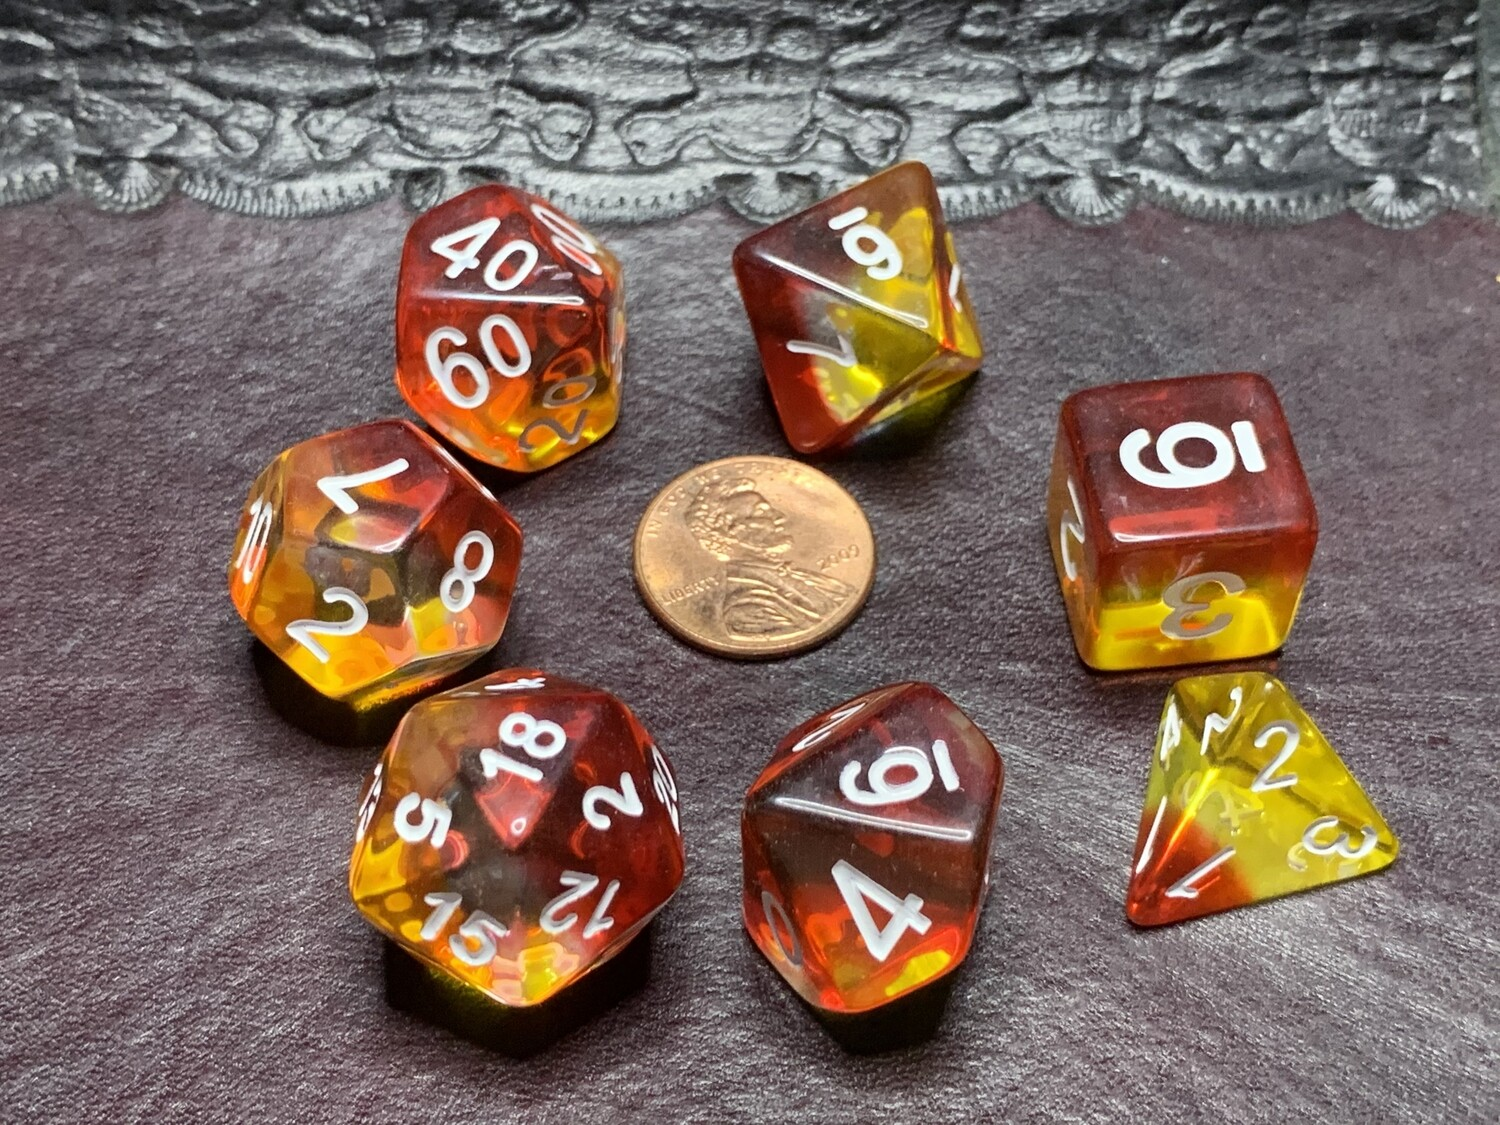 Standard Polyhedral 7 Die Dice Set - Transparent Two-layer Red & Yellow with White